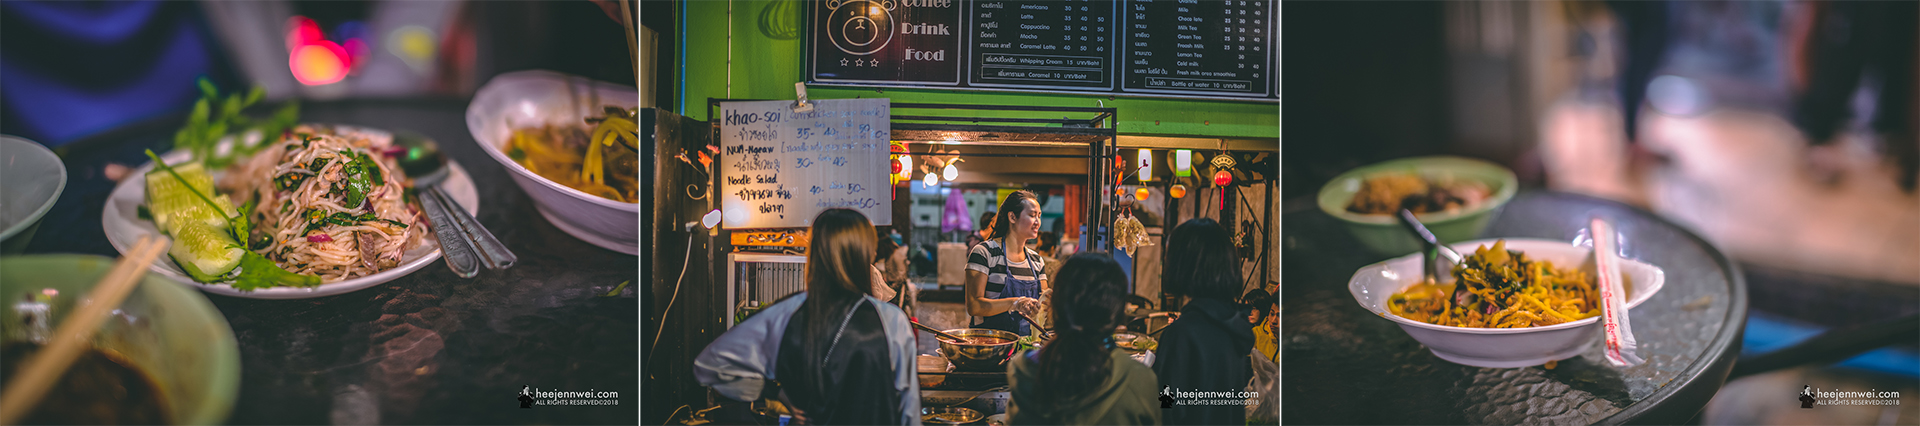 One last try on Khao Soi noodle at the night market.